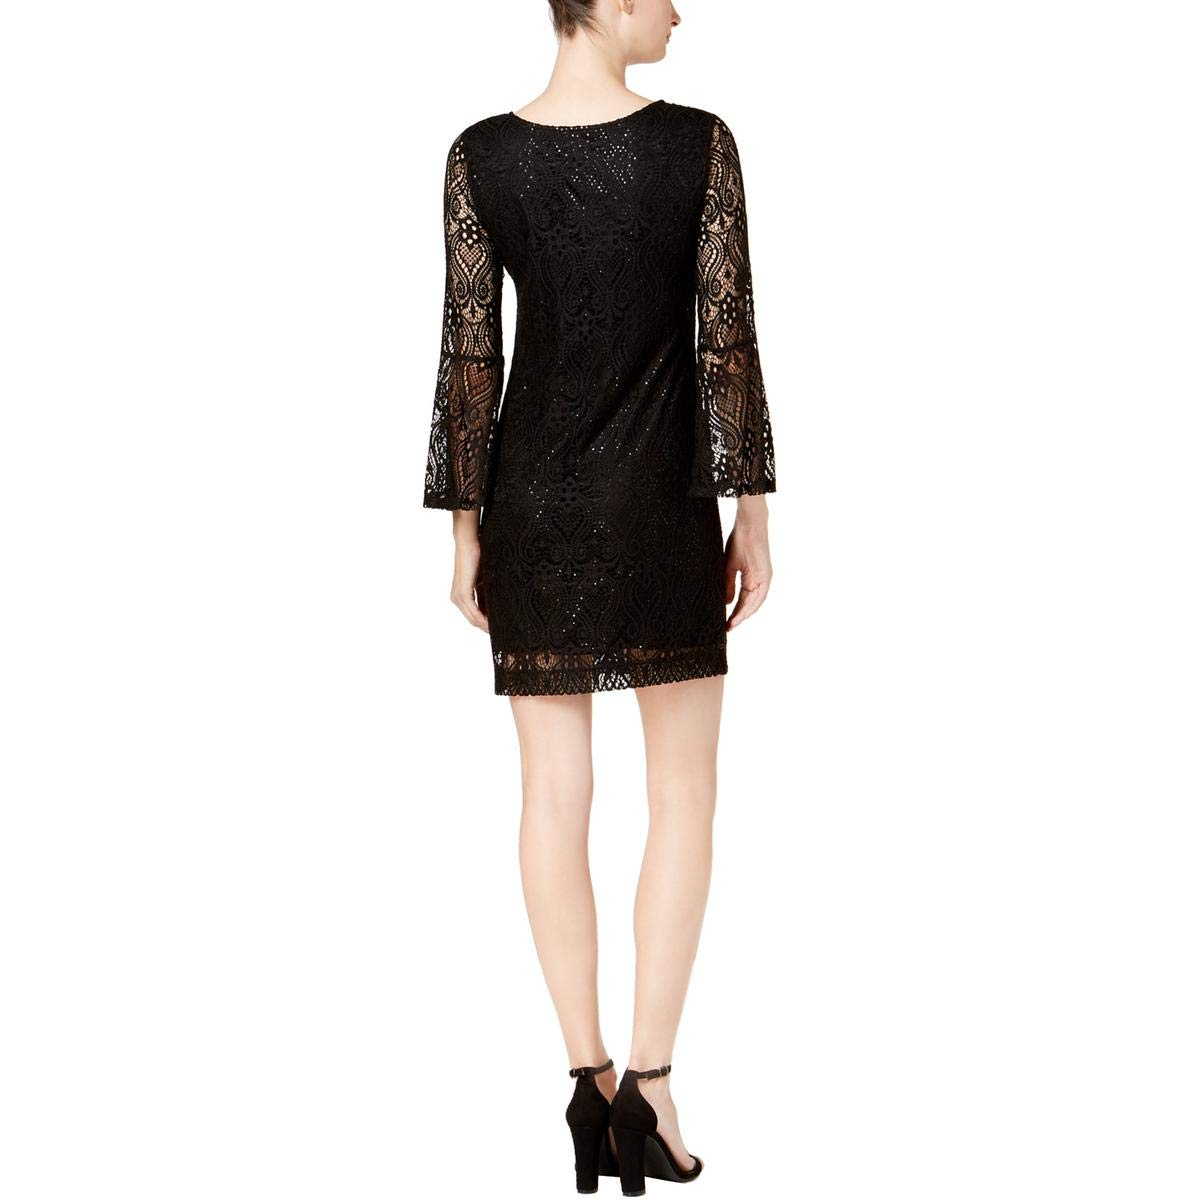 f947bef3f14 Petite Black Lace Cocktail Dress - Data Dynamic AG